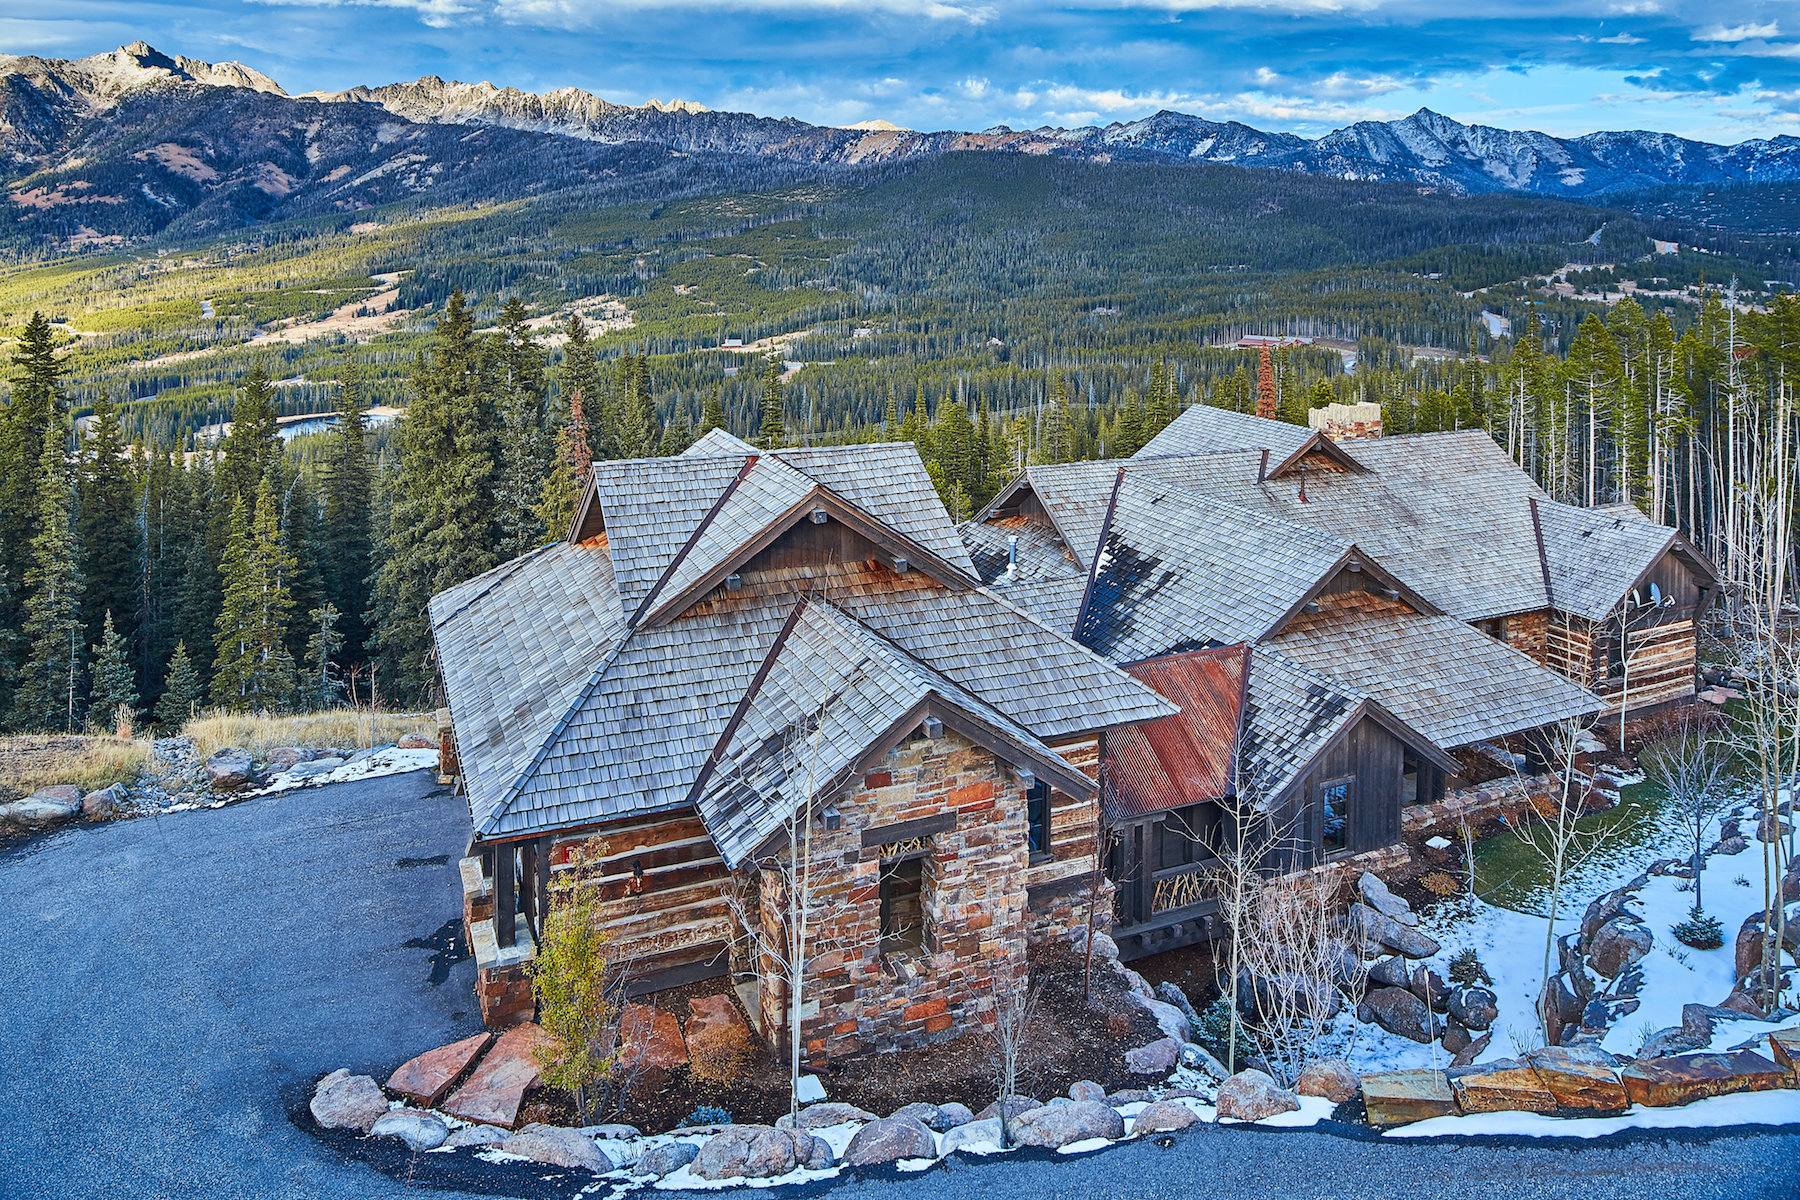 Single Family Home for Sale at Cowboy Heaven Ski Home 39 Renegade Road Big Sky, Montana 59716 United States